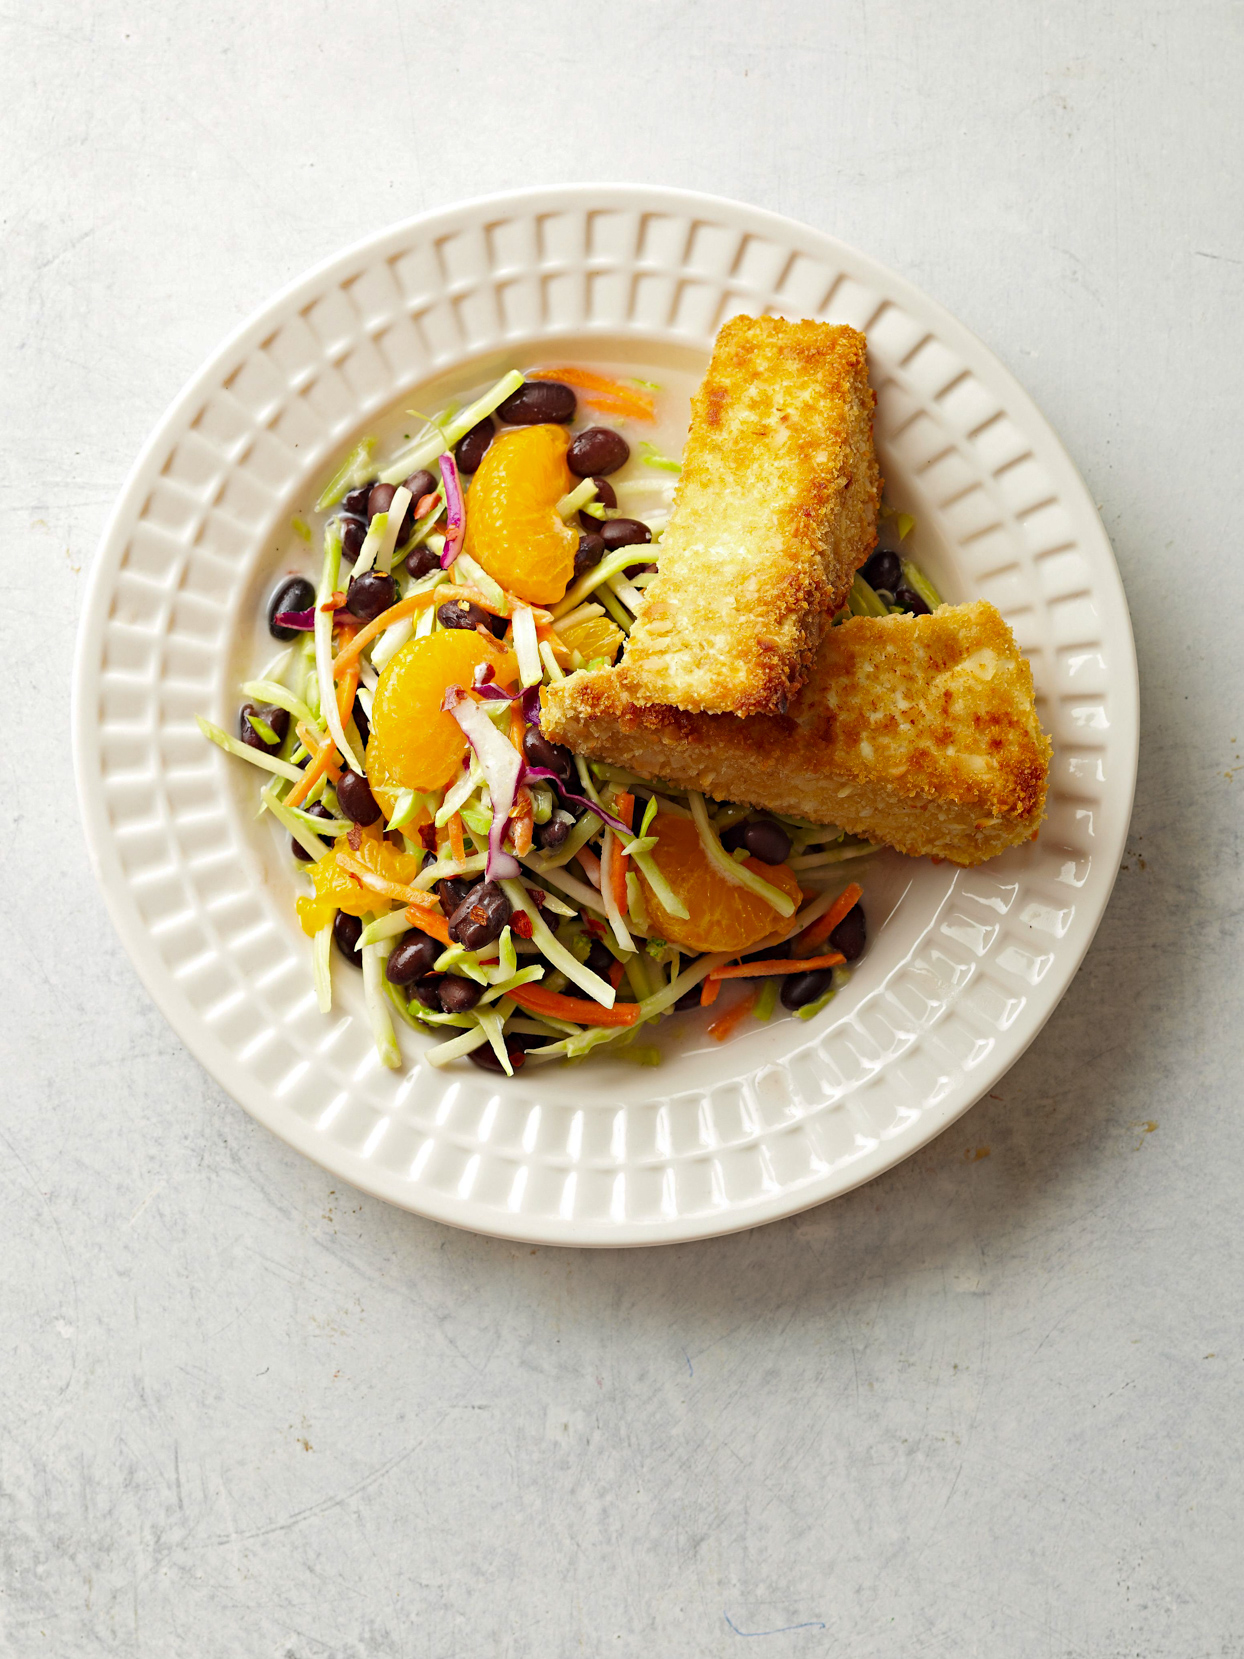 Coconut-Crusted Tofu with Black Bean Slaw